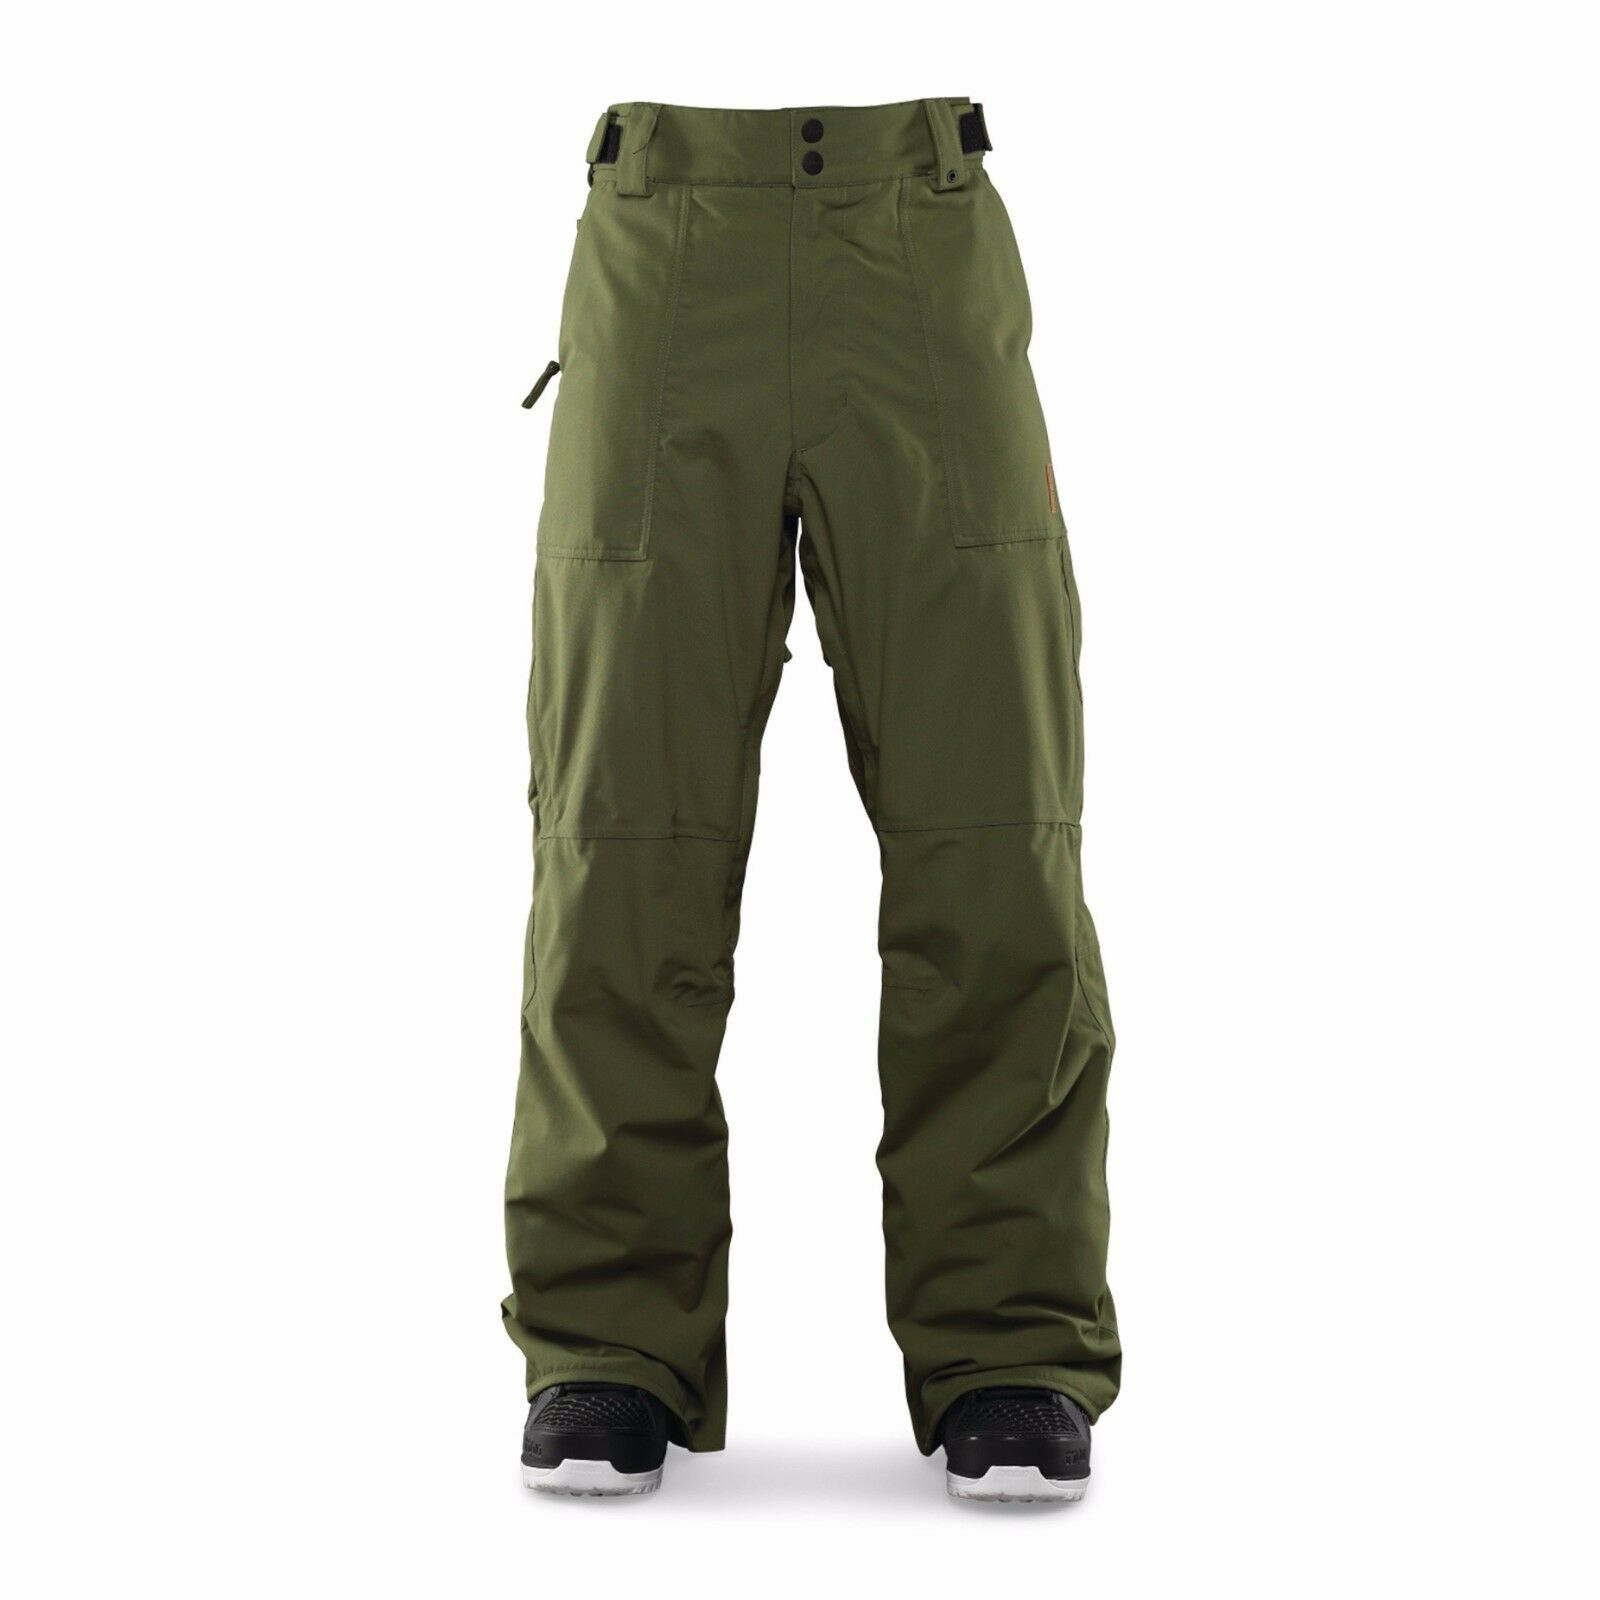 2016 NWT MENS THIRTYTWO ENGLER SNOWBOARDING PANTS  military green